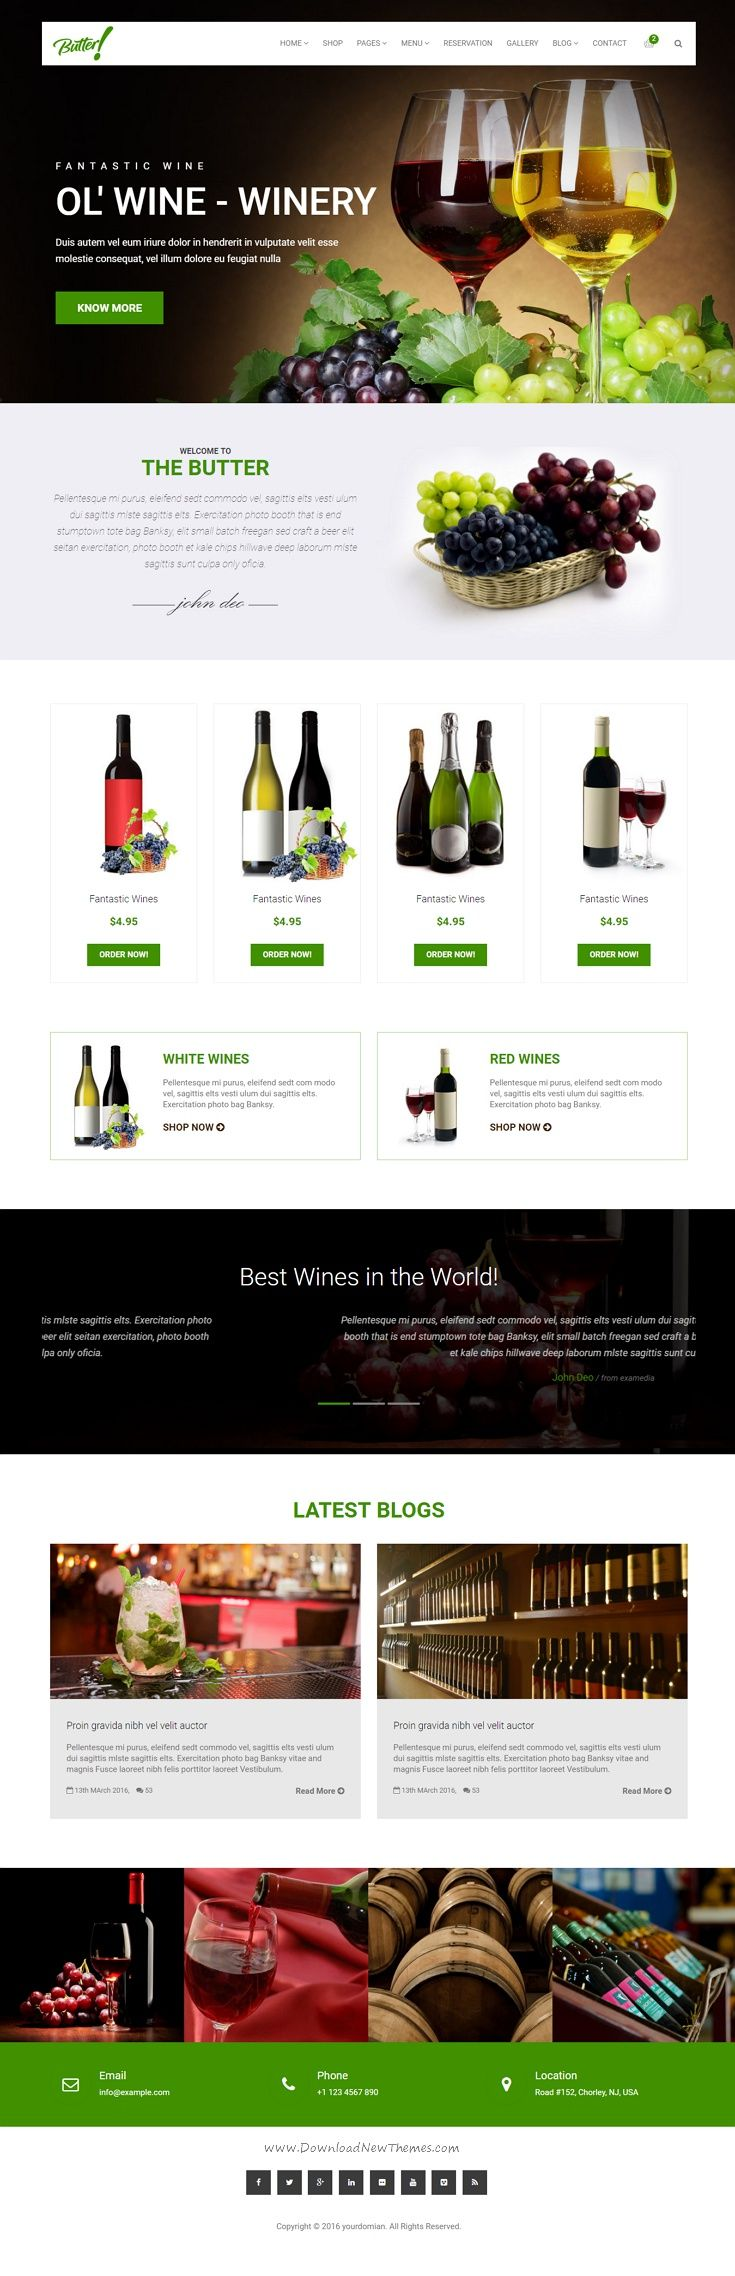 Butter is a Restaurant, Bakery, Coffee, #Winery and Pizza HTML5 Bootstrap theme with 5 Stunning layouts design. It comes with Unique Pages, Awesome Slideshows, Unique Color Variations. Easy-to-customize and fully featured design. Create Outstanding #Website in Minutes! #winestore